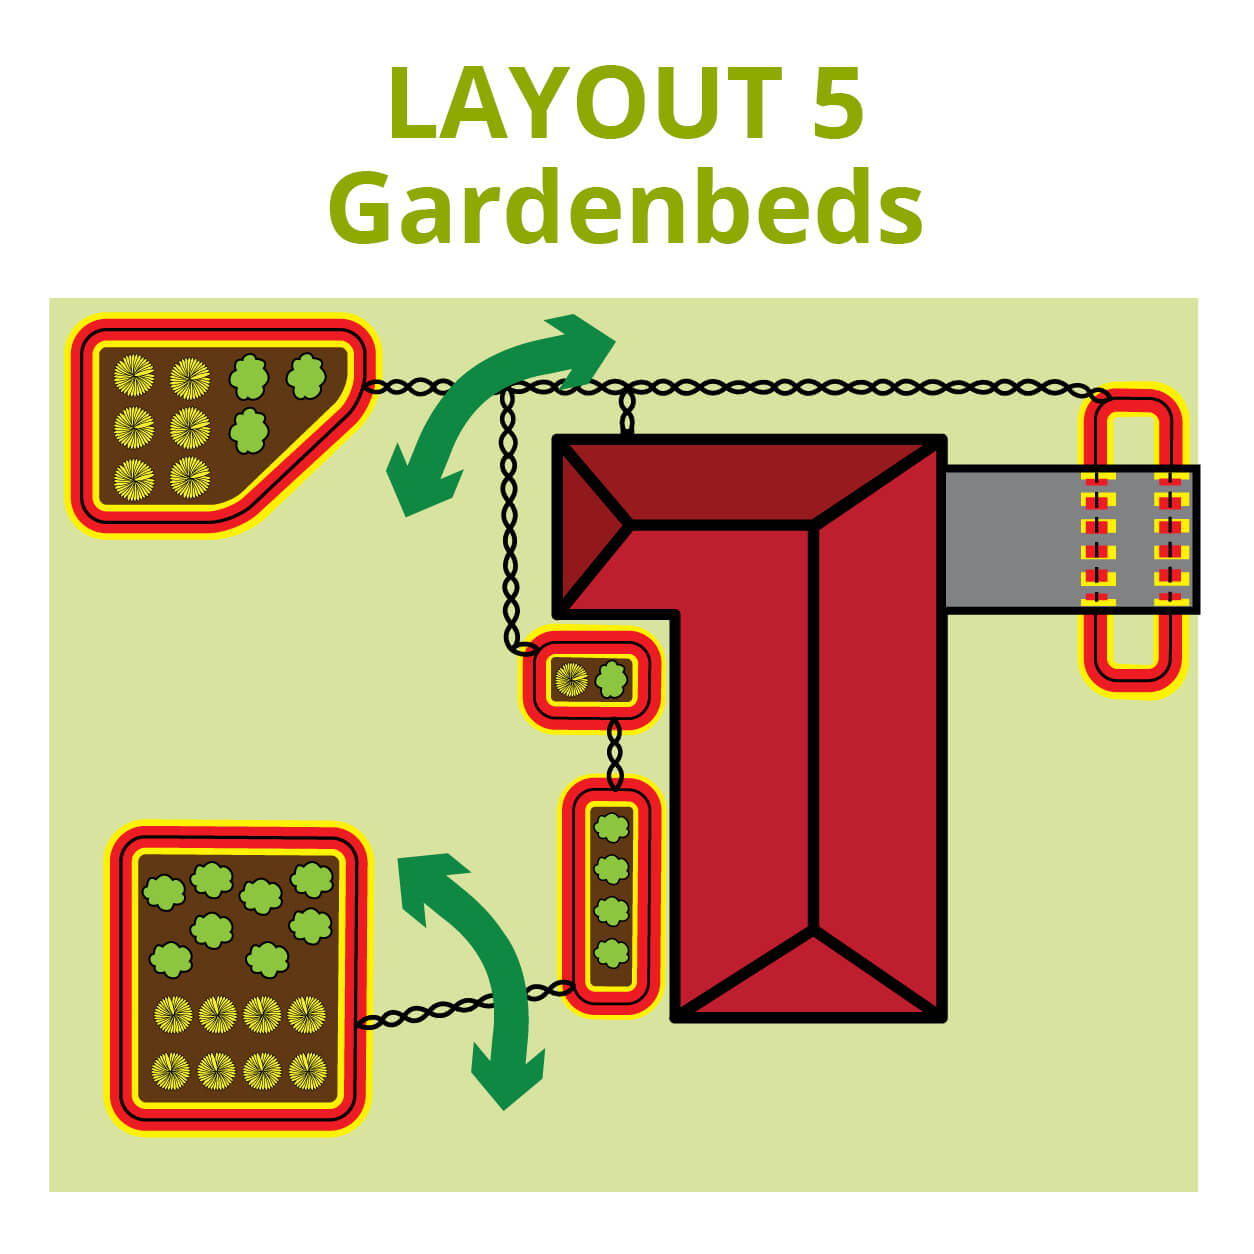 Dog Fence Garden Gate Layout